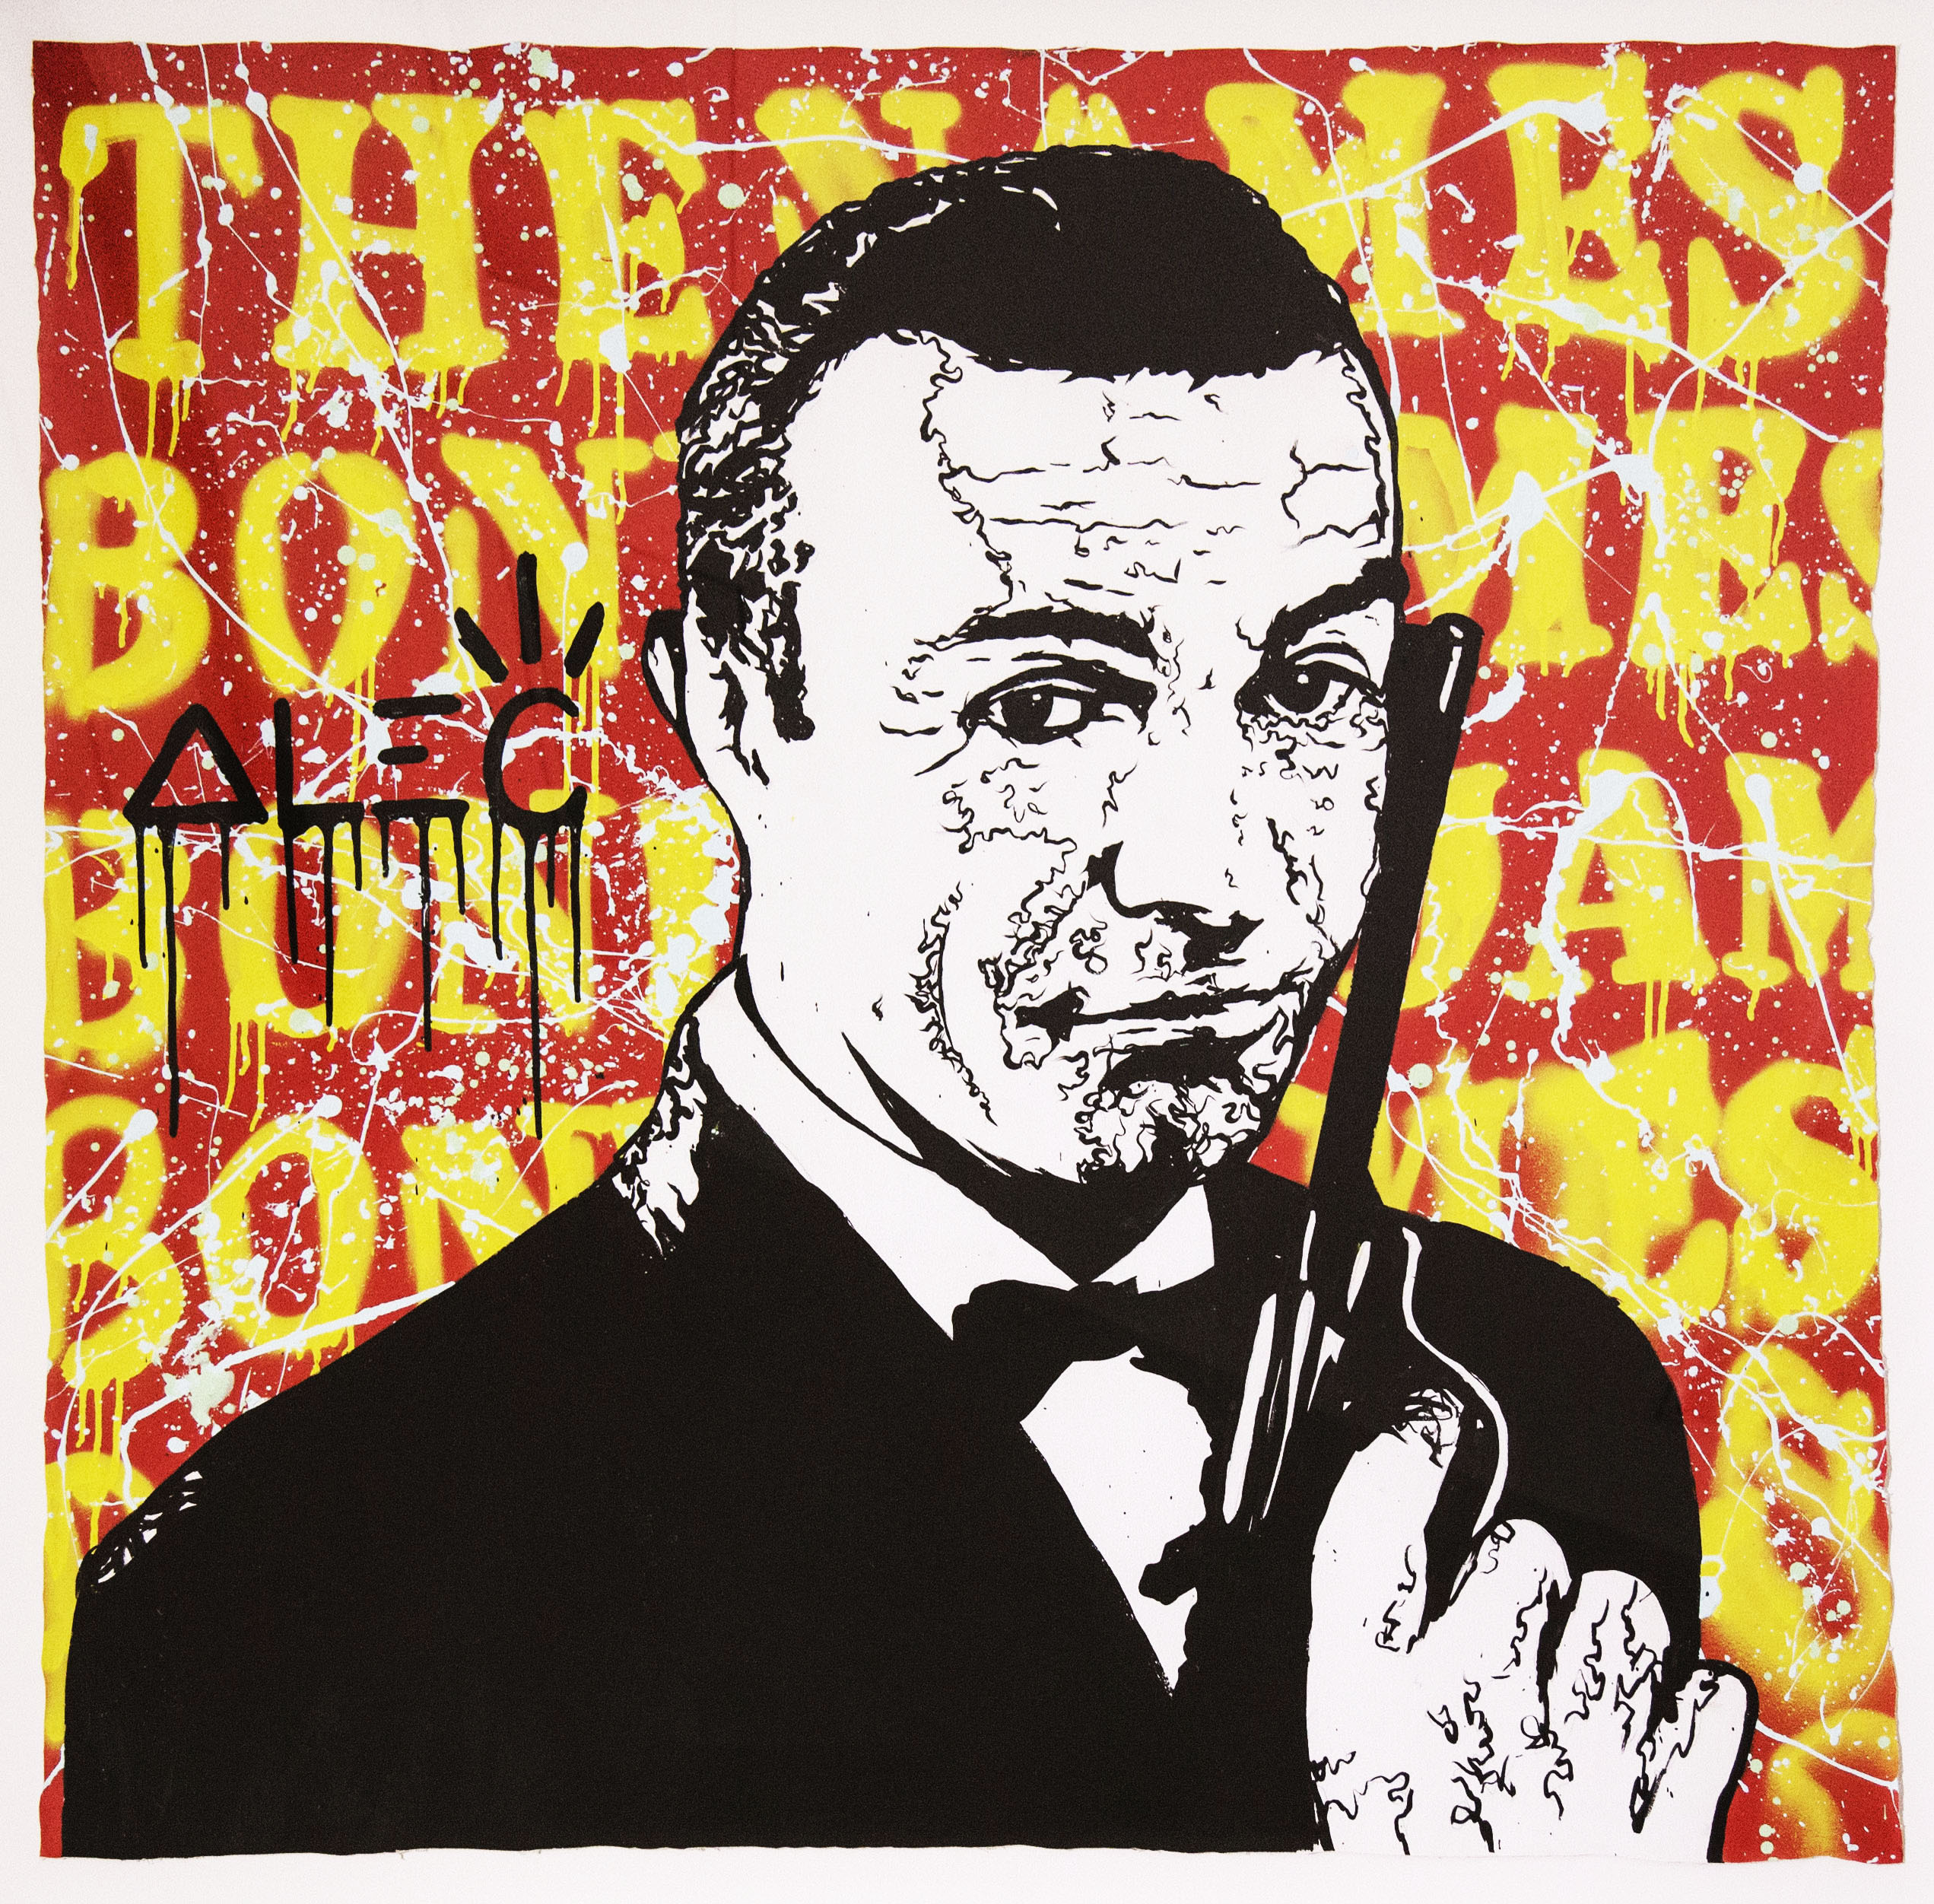 James Bond by Alec Monopoly